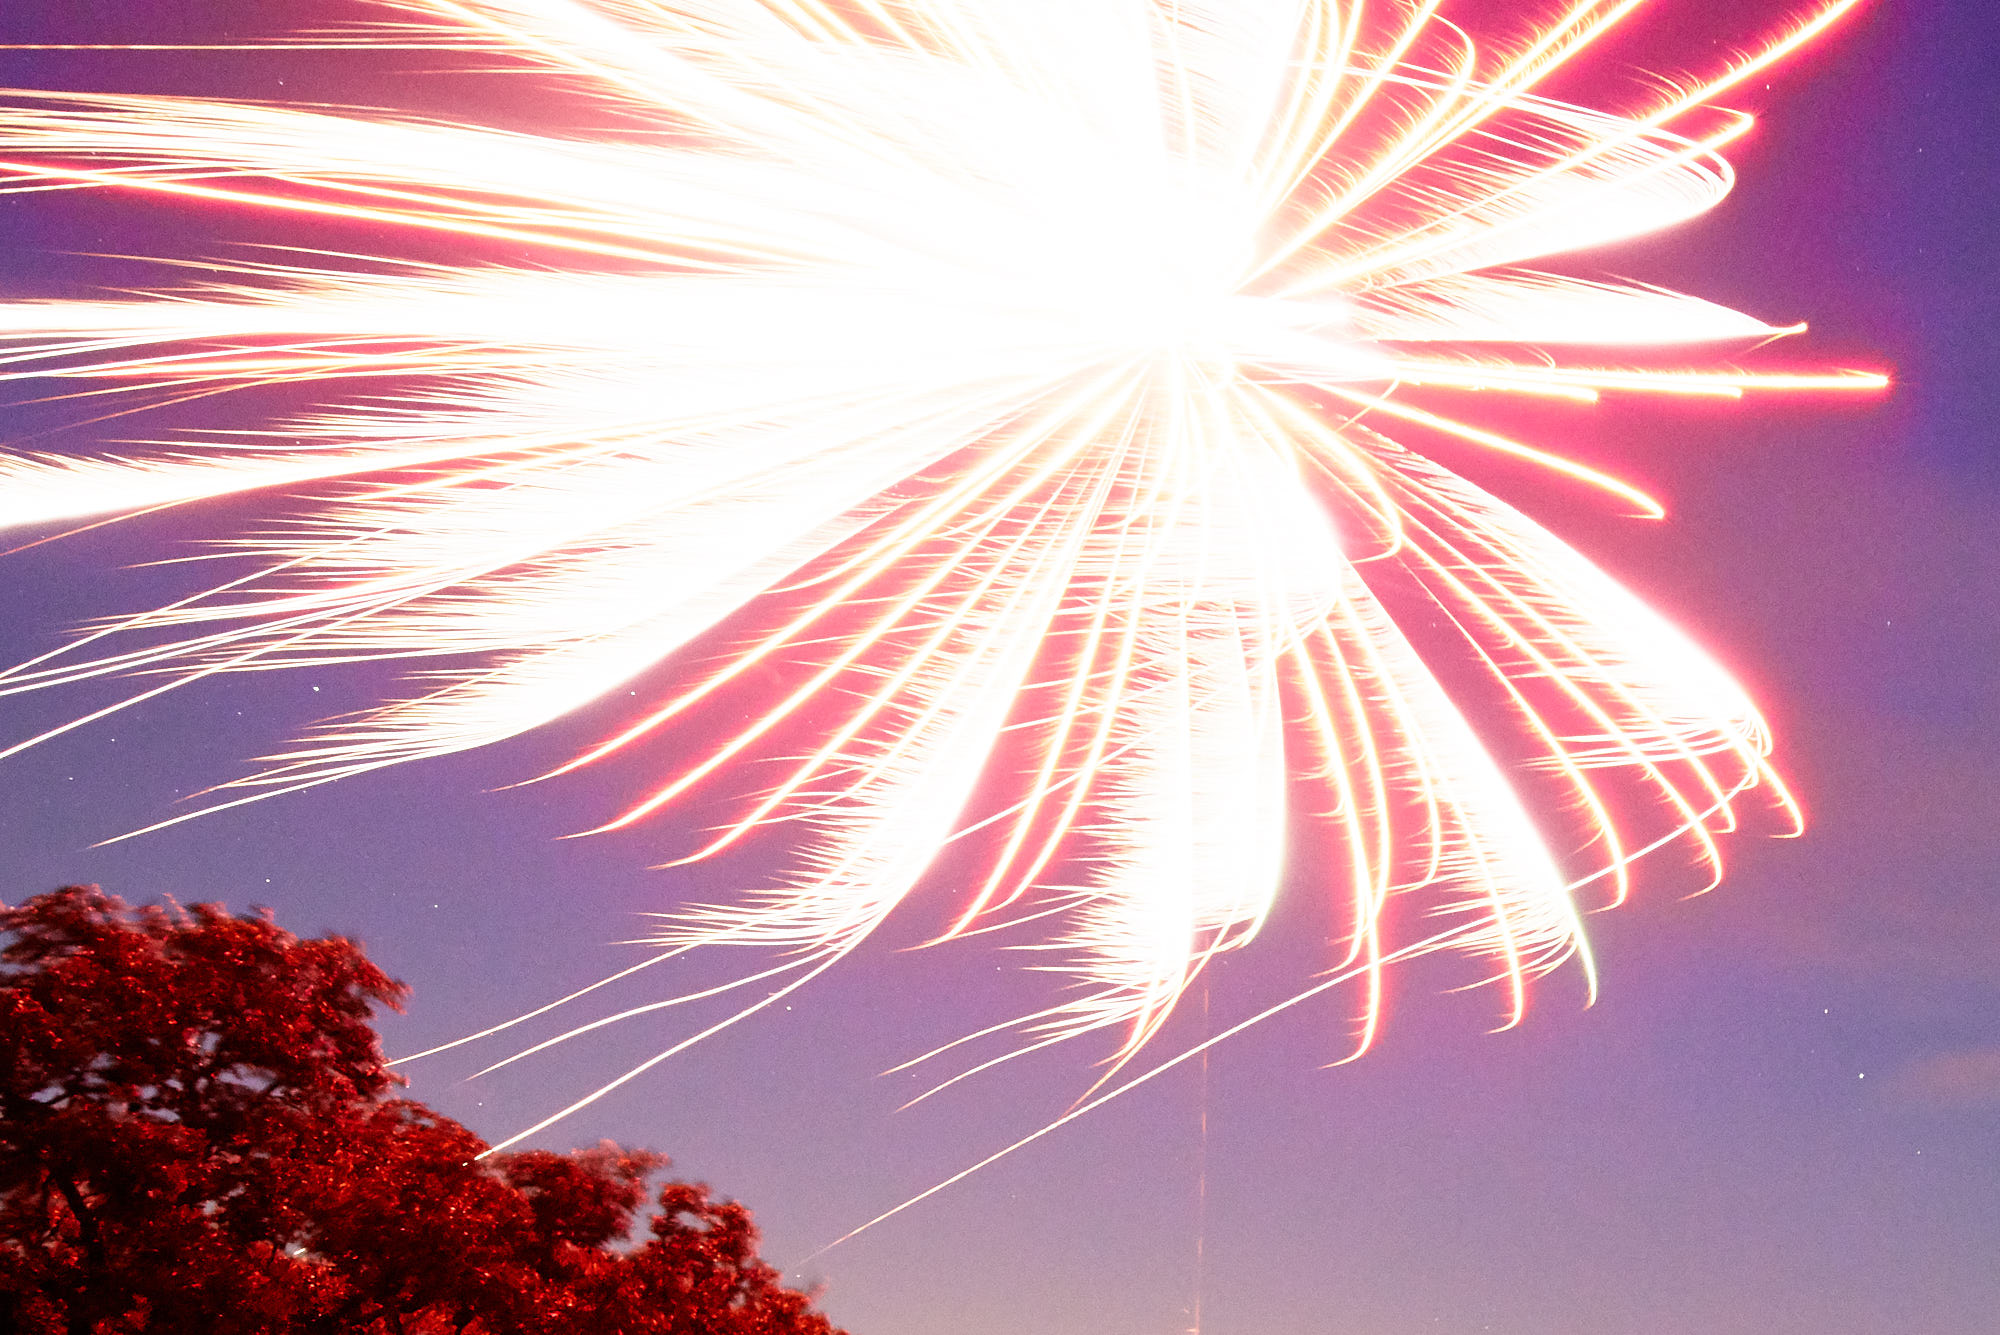 Photographing Fireworks - Proper Exposure - Too Bright